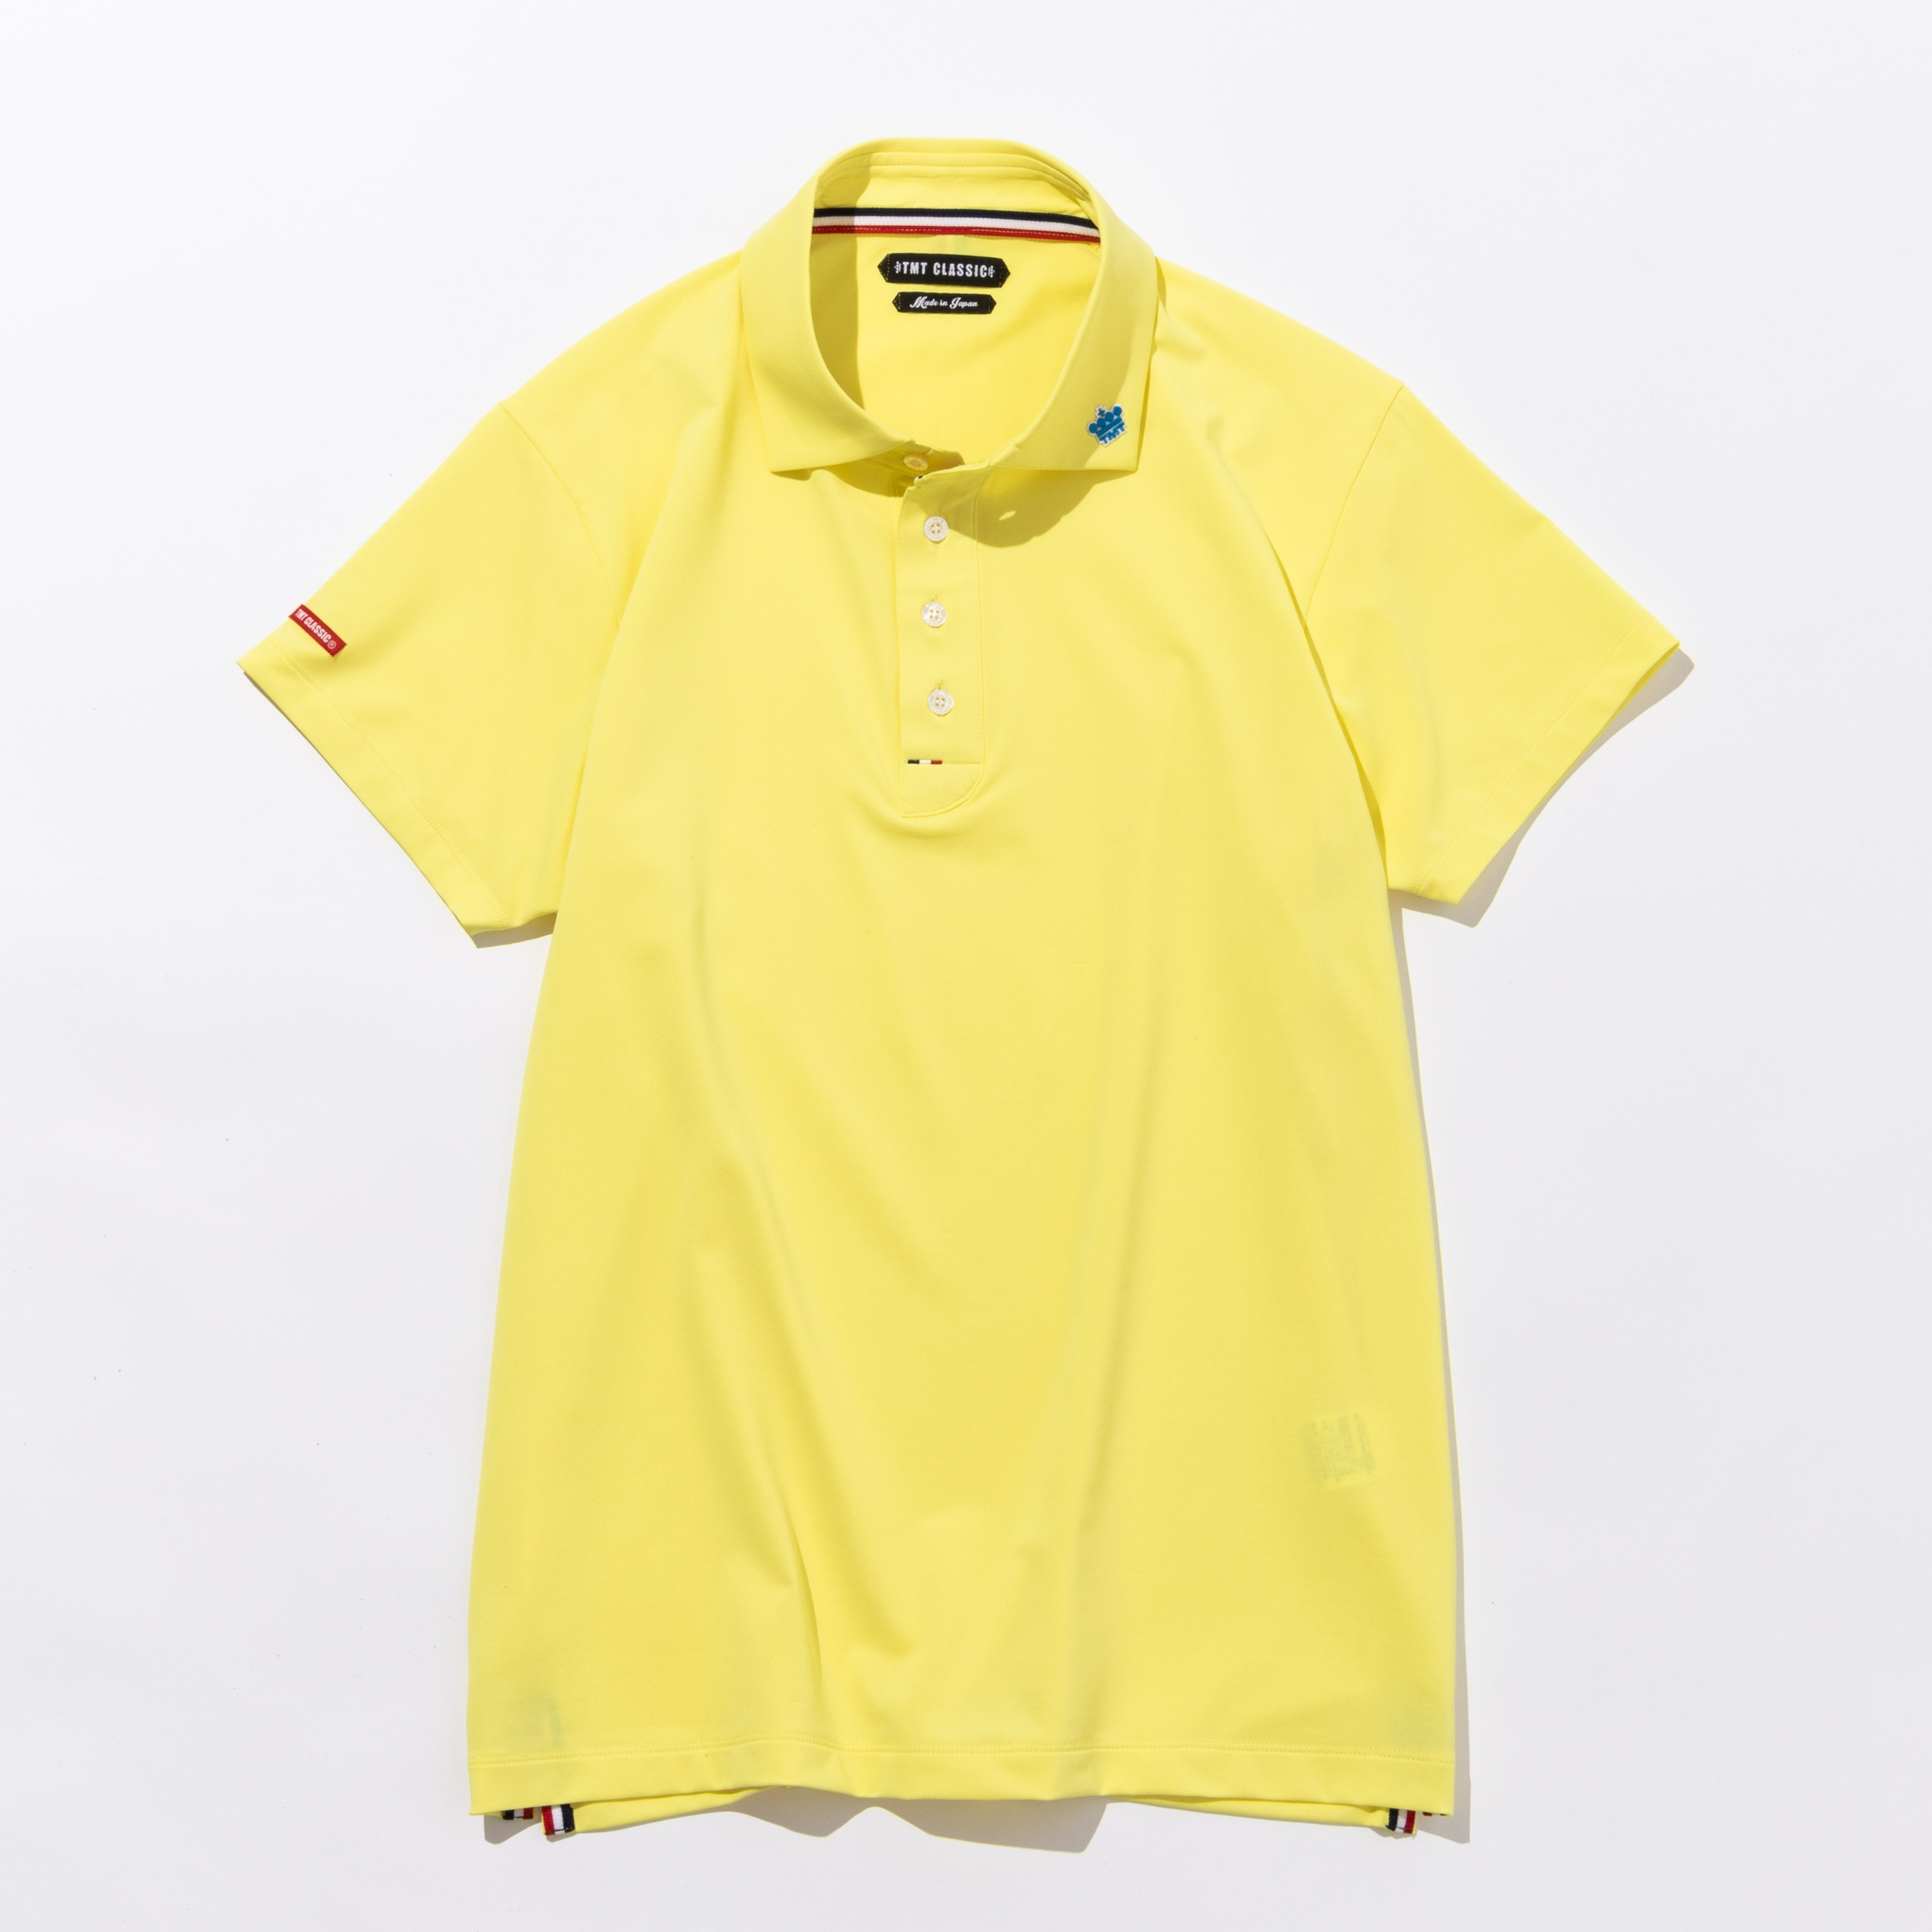 TMT Classic FUNCTIONAL STRETCH JERSEY POLO SHIRT イエロー